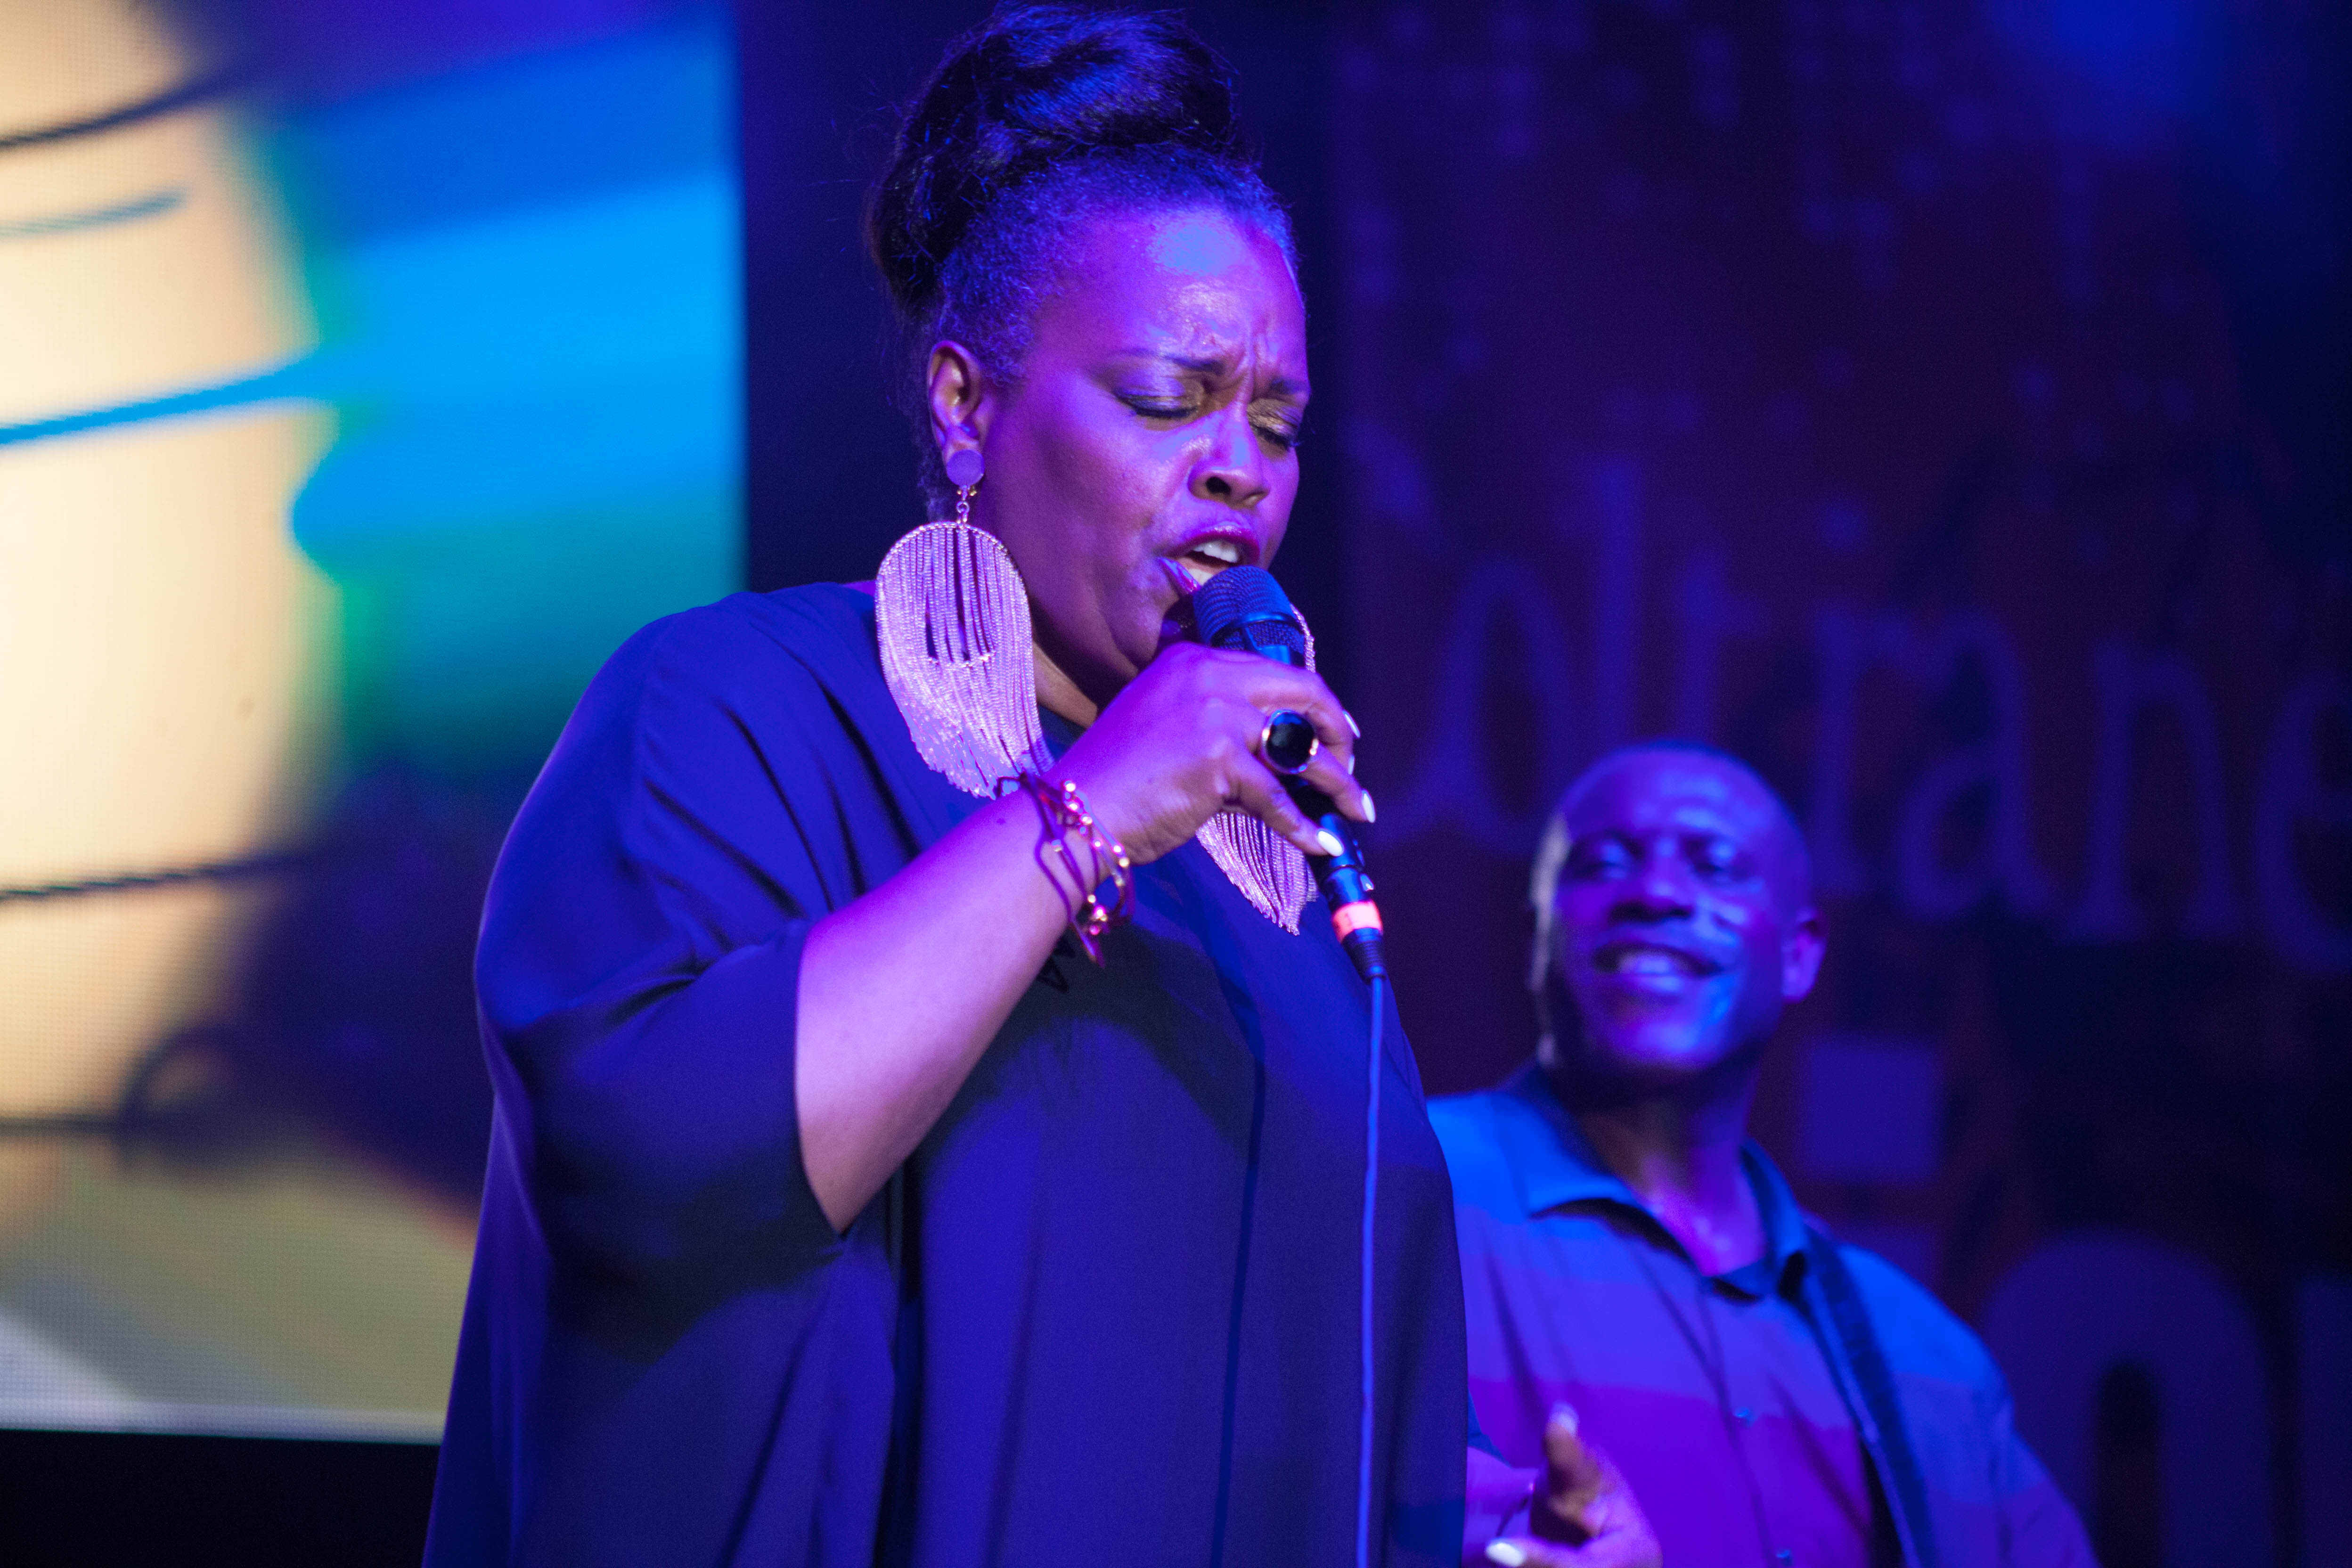 Dianne Reeves At The 8th Annual John Coltrane International Jazz And Blues Festival